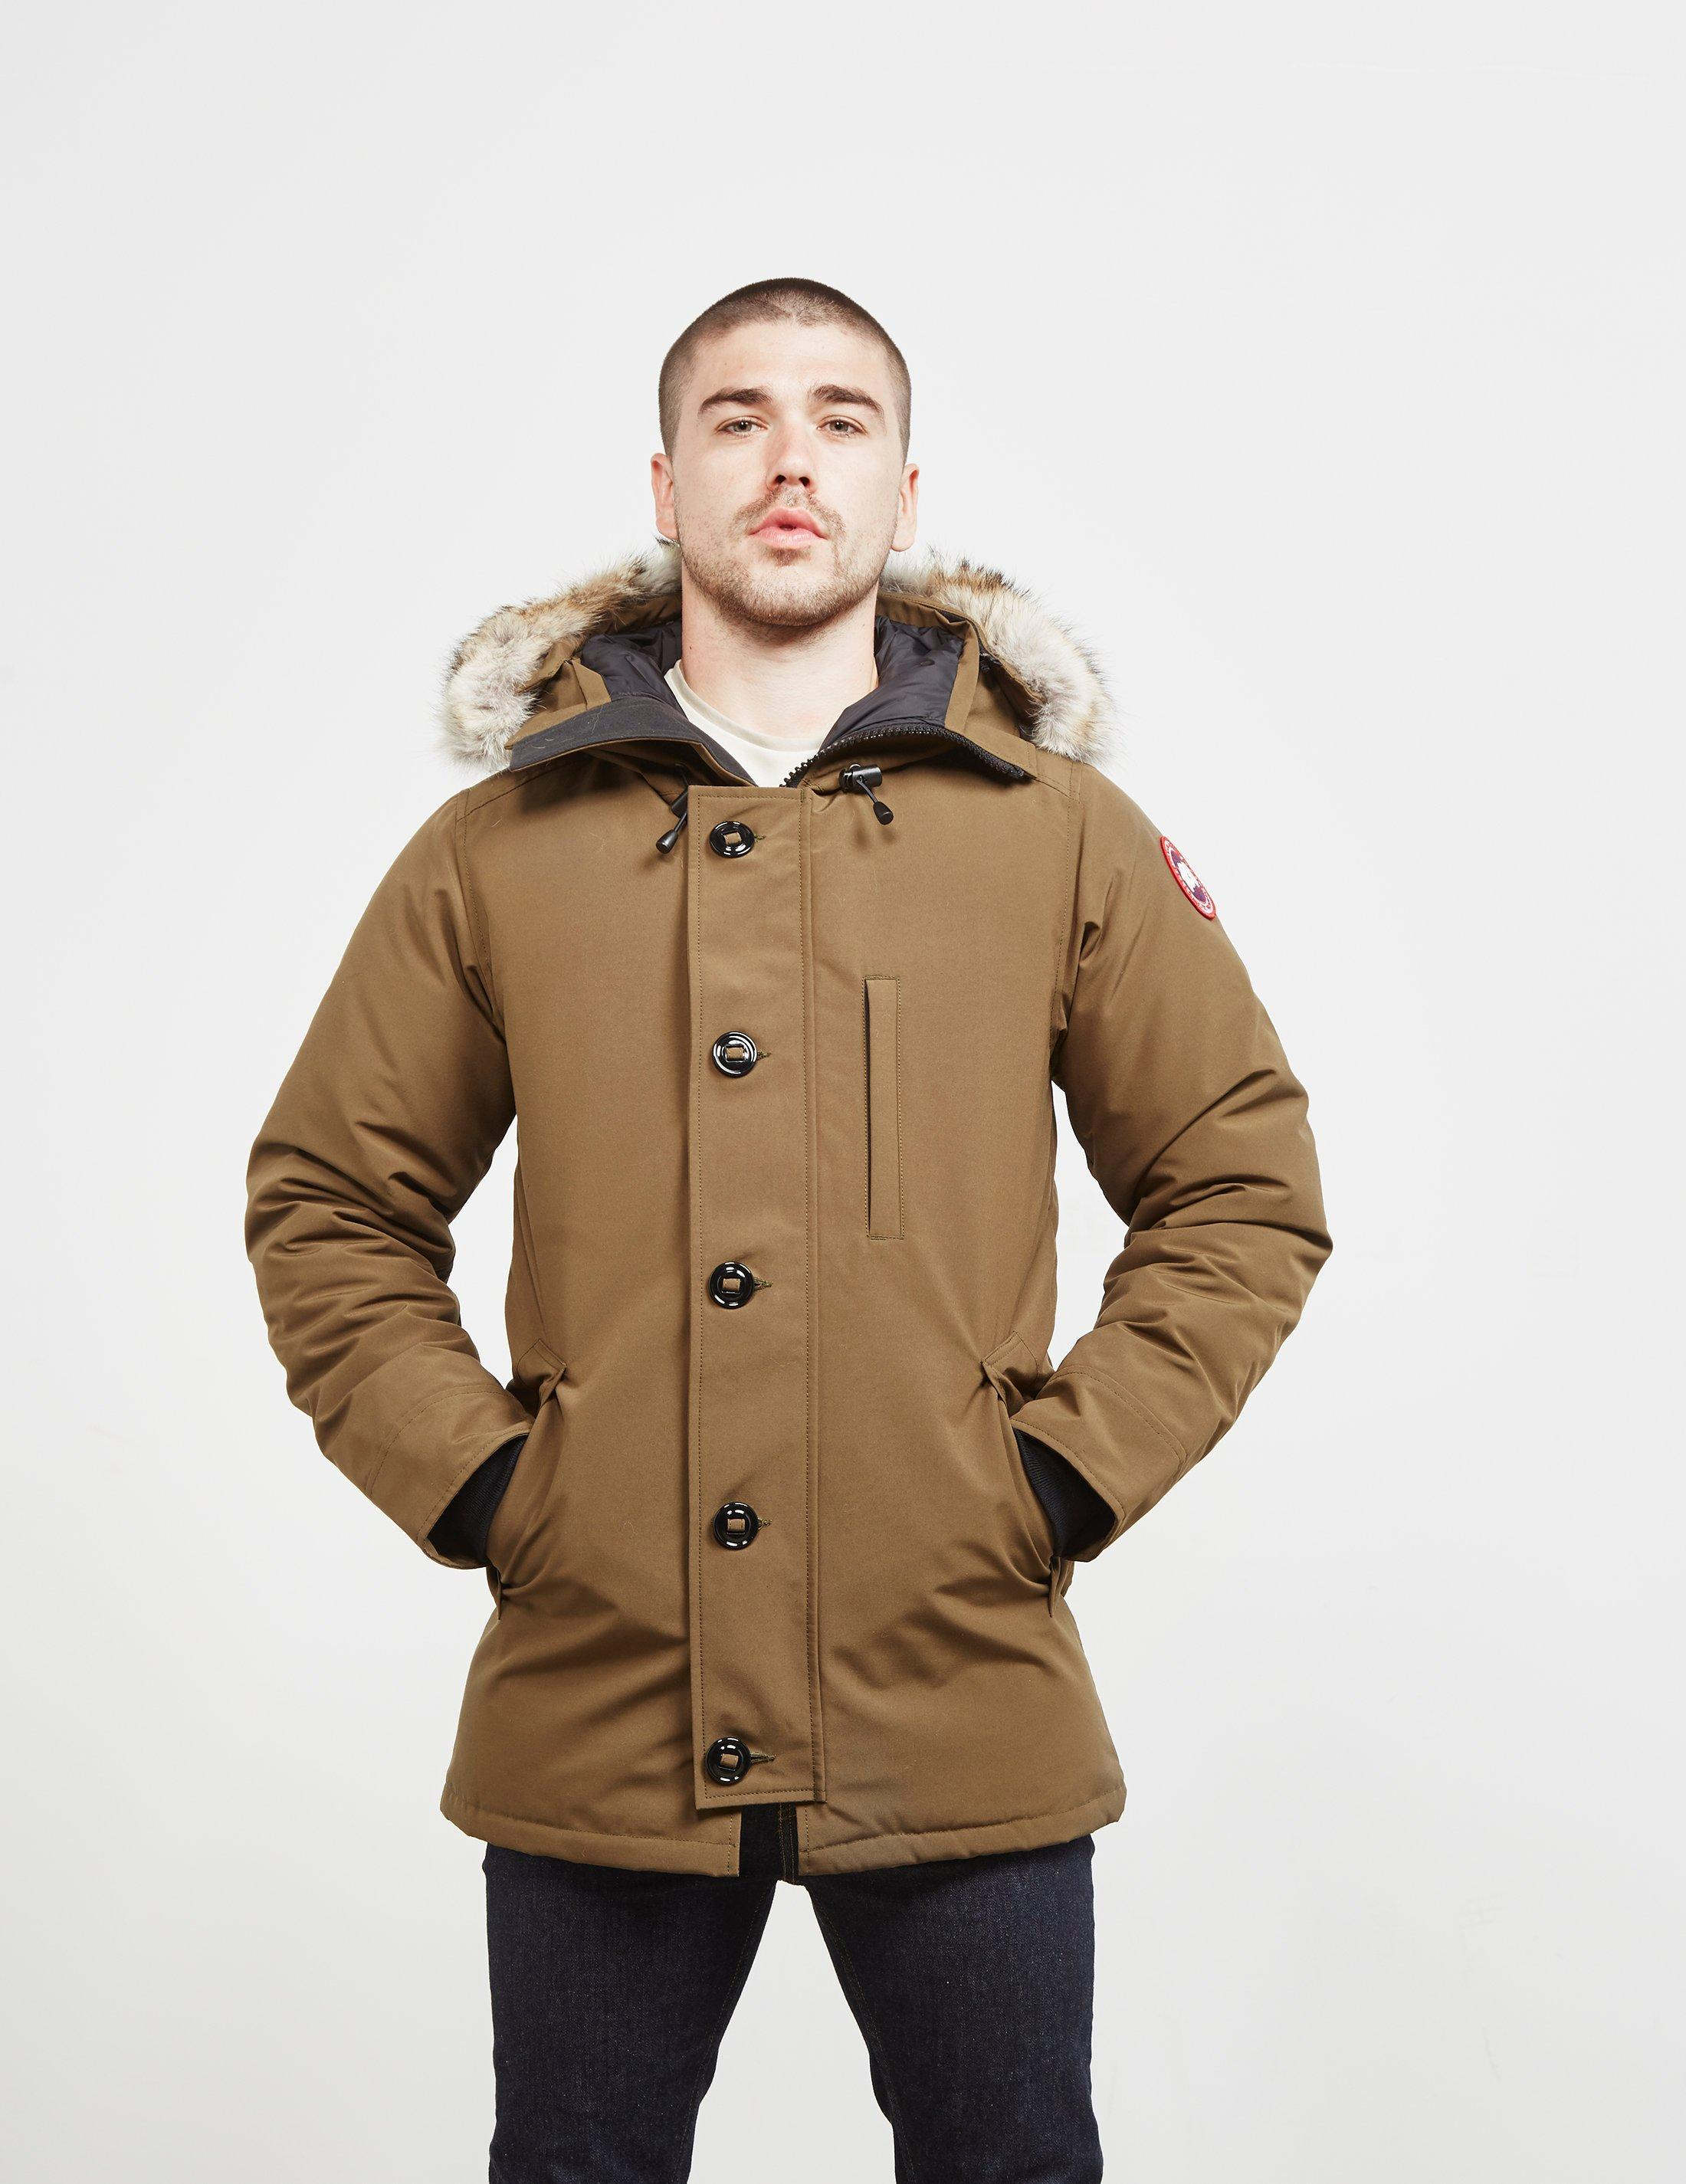 472b066ac5a6 Canada Goose - Chateau Padded Parka Jacket Green for Men - Lyst. View  fullscreen